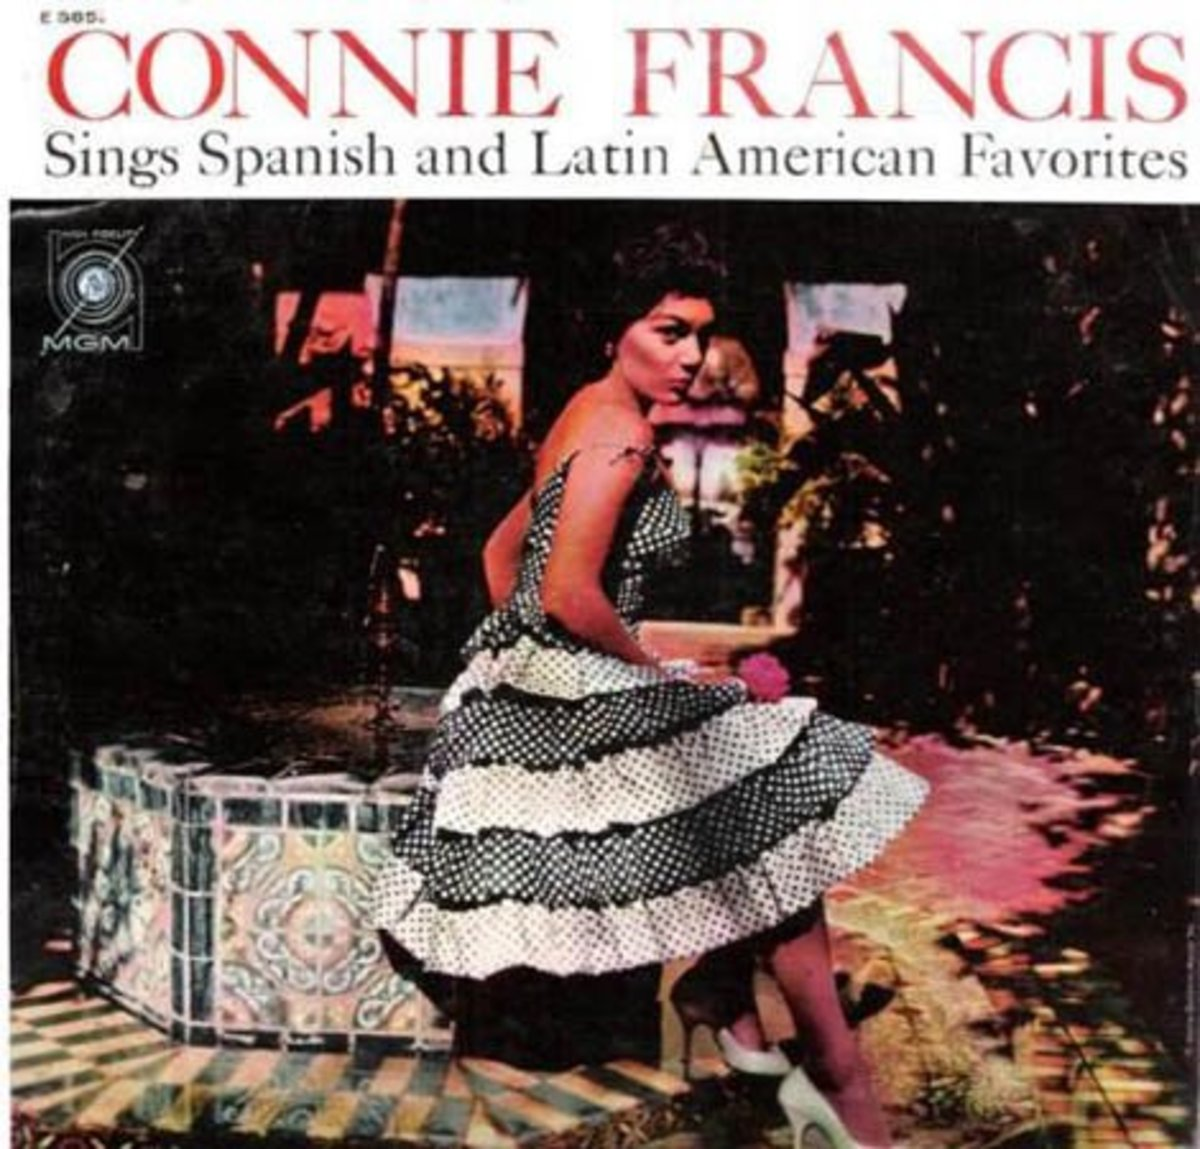 Connie Francis Sings Spanish and Latin American Favorites ( 1960 MGM Records)